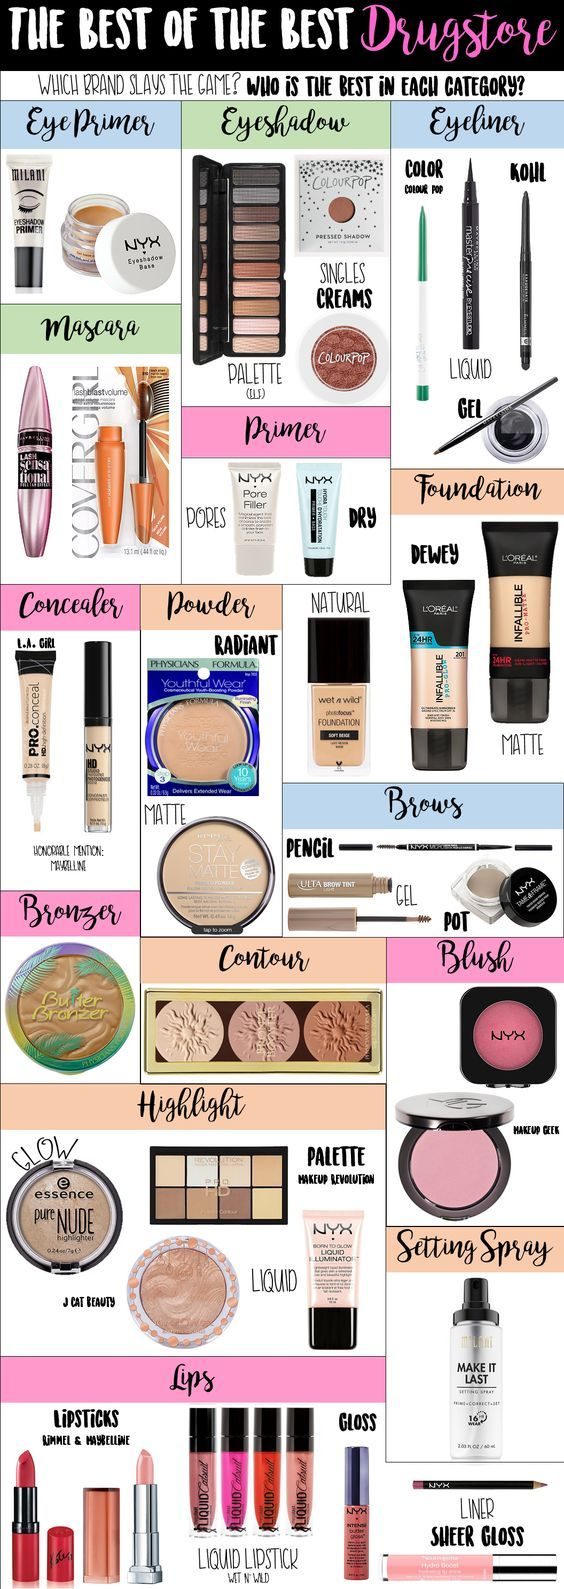 Best Drugstore Makeup - Best Brand Items Shown: Milani Eye Shadow Primer (CVS & Walgreens), NYX Eyeshadow Base (ULTA & Target), Colour Pop Pressed Powders and Suoer Shock Eyeshadows (http://Colourpop.com), e.l.f. mad about matte eye shadow palette (ULTA & Target), Colour Pop Eyeliner, Maybelline MasterPrecise Liquid Eyeliner and Gel Liner, Rimmel Eyeliner, Maybelline Lash Sensational Mascara, Covergirl Lash Blast Volume Mascara,